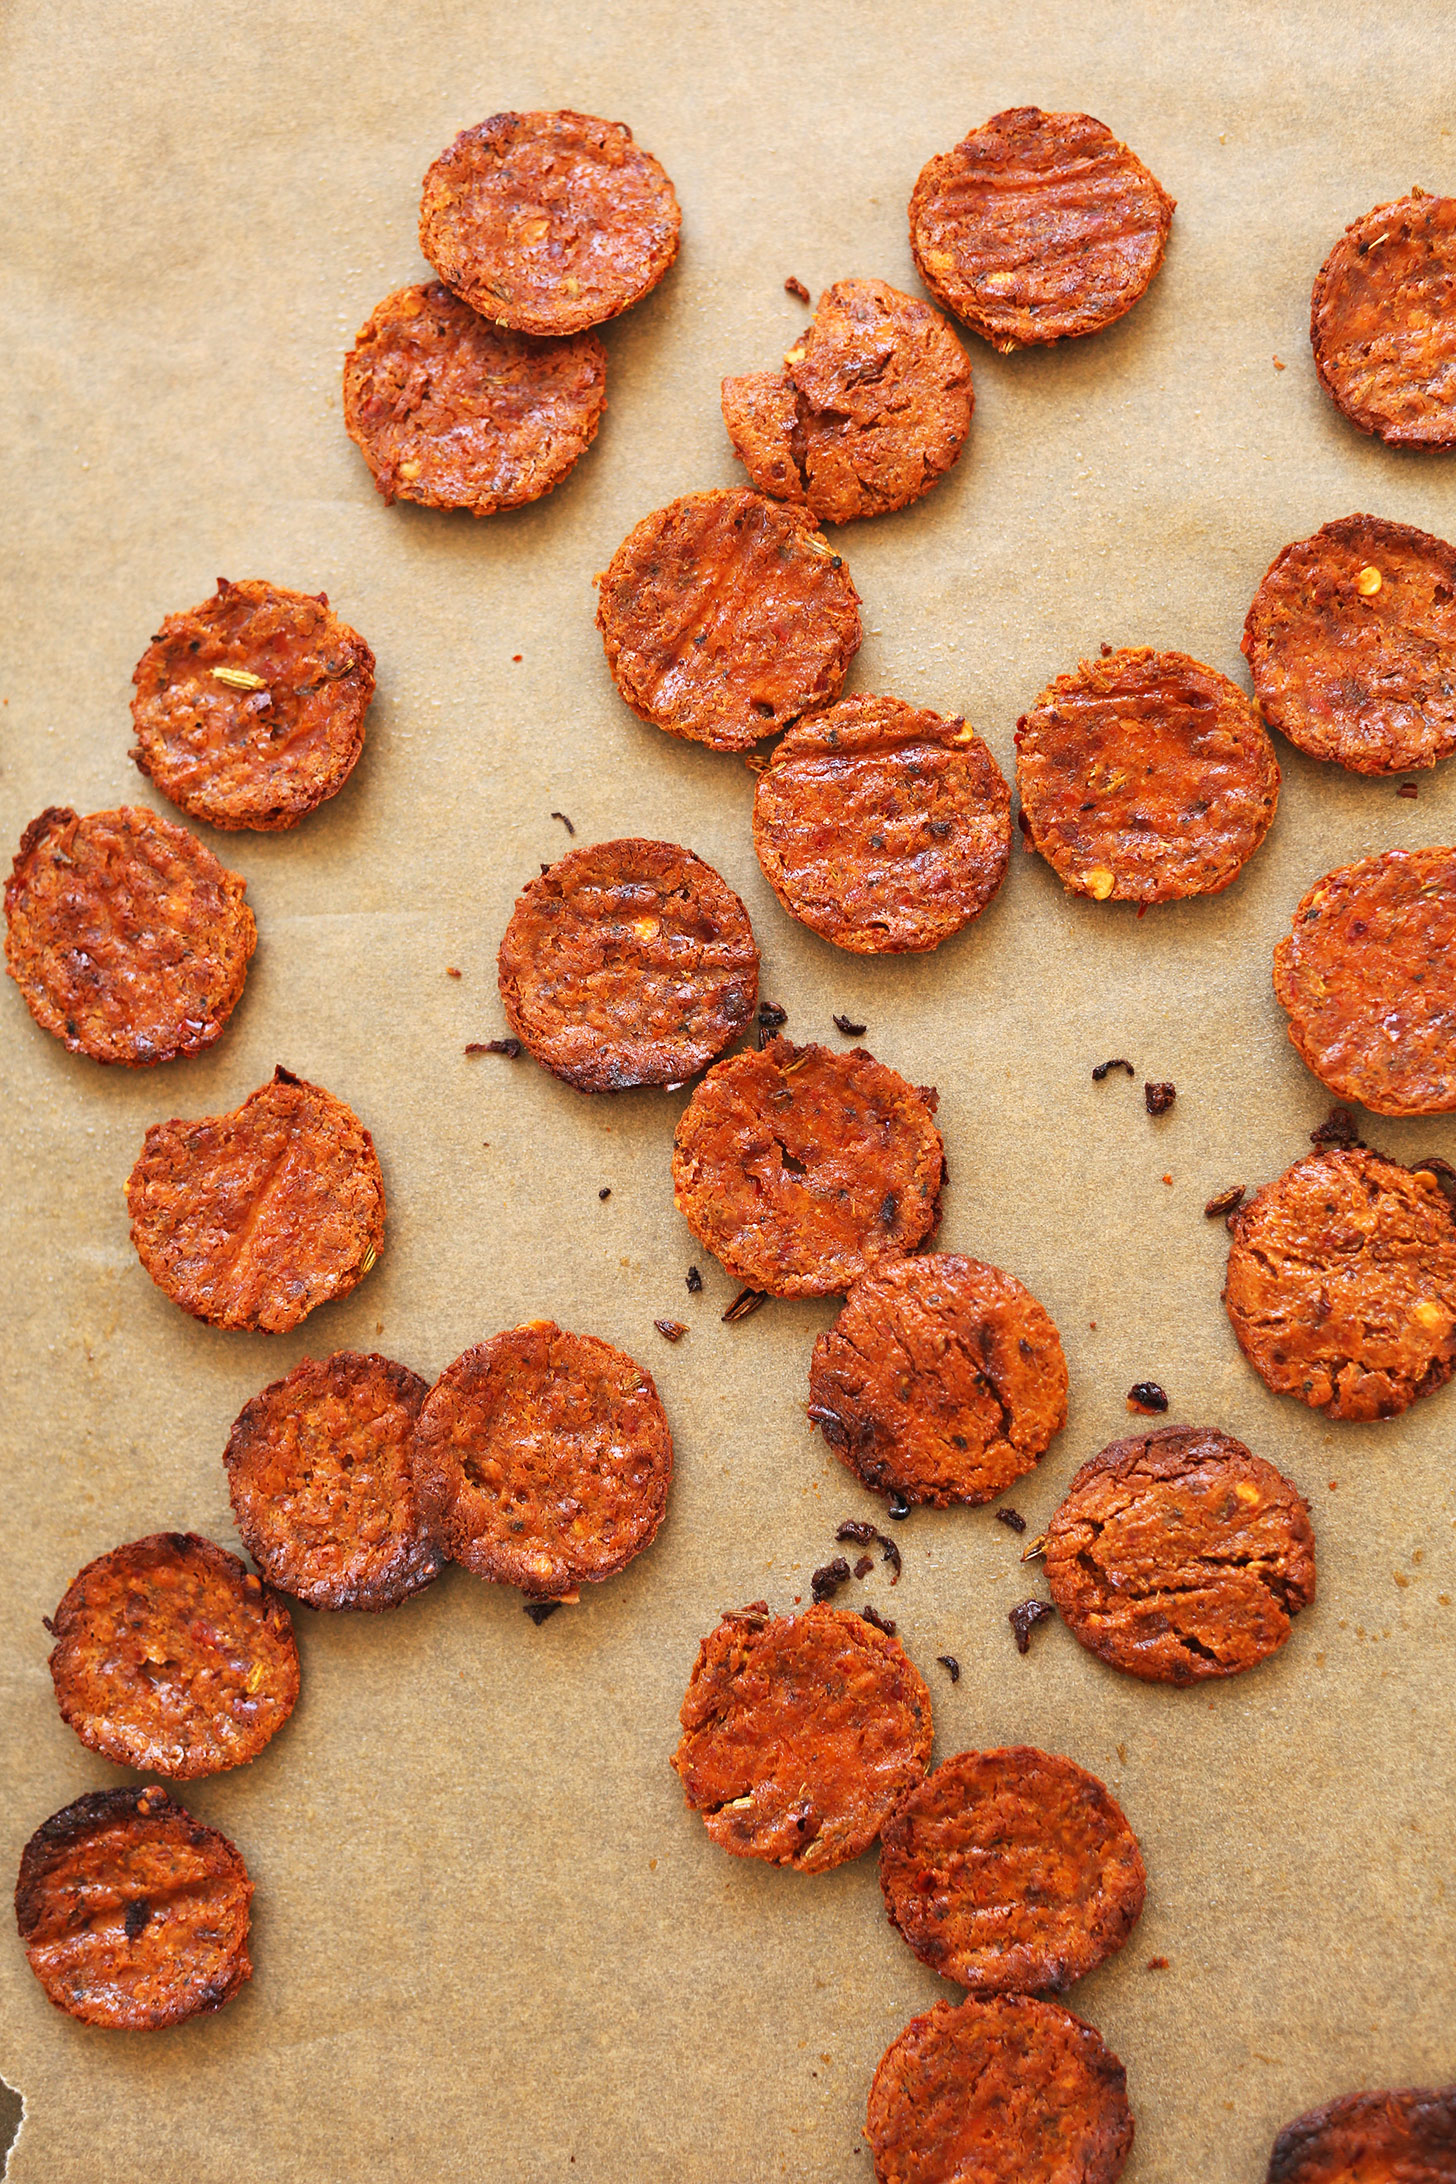 Freshly baked circles of vegan pepperoni